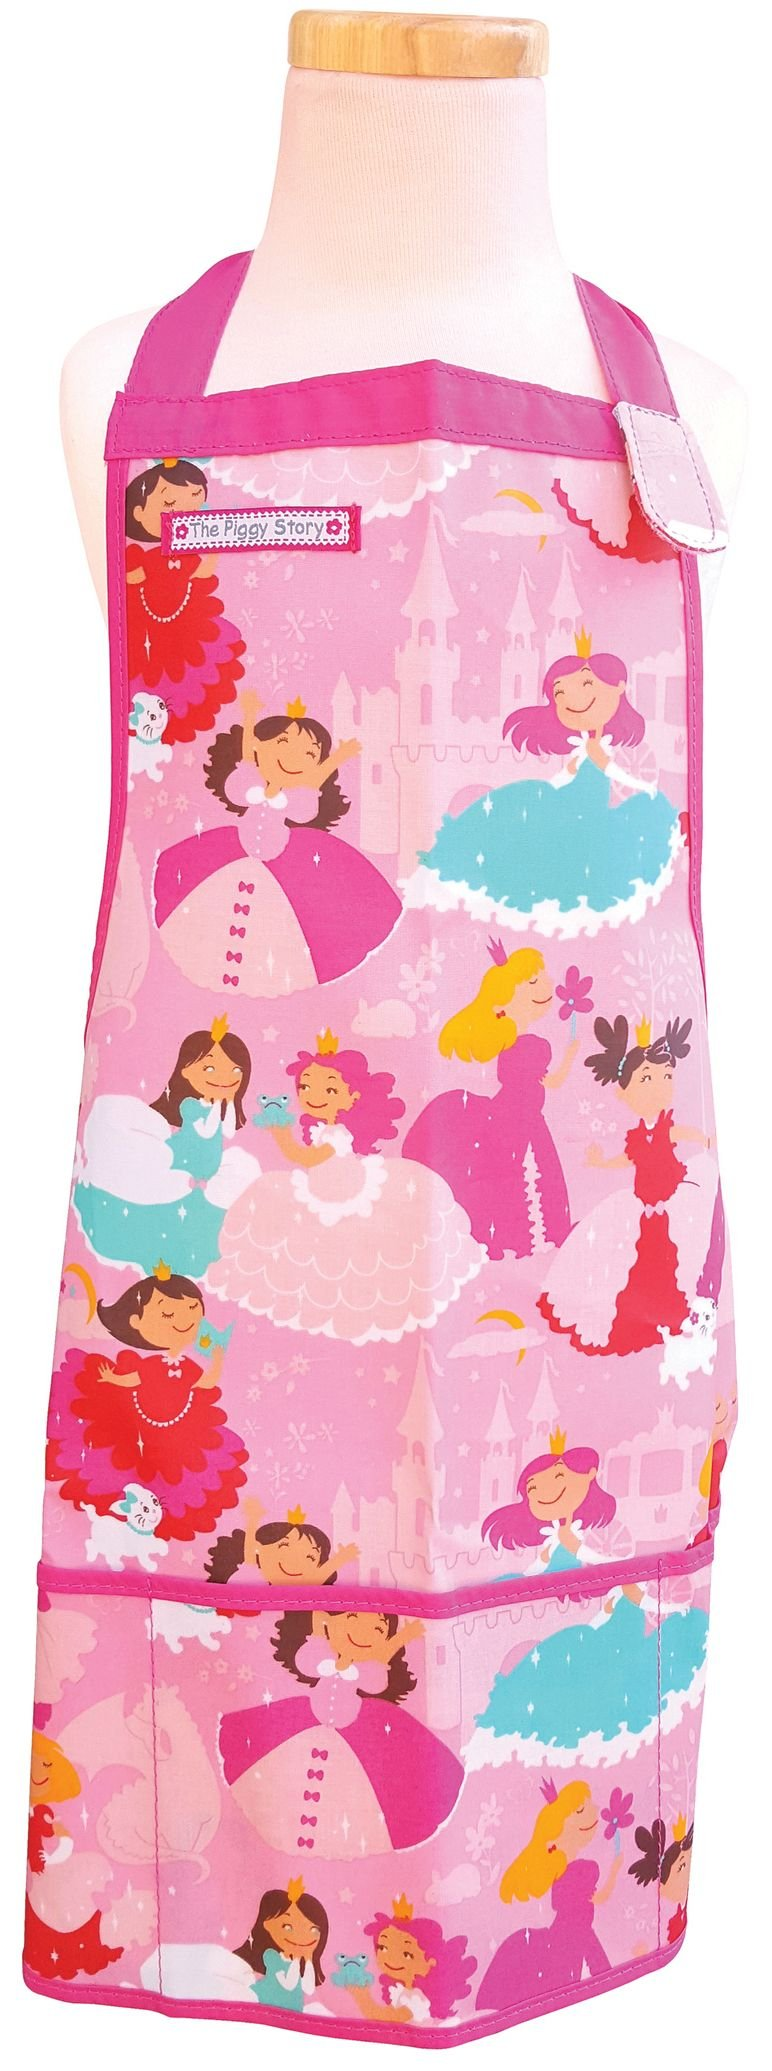 The Piggy Story 'Enchanted Princesses' Child's Fun Time Apron for Arts, Crafts and Cooking